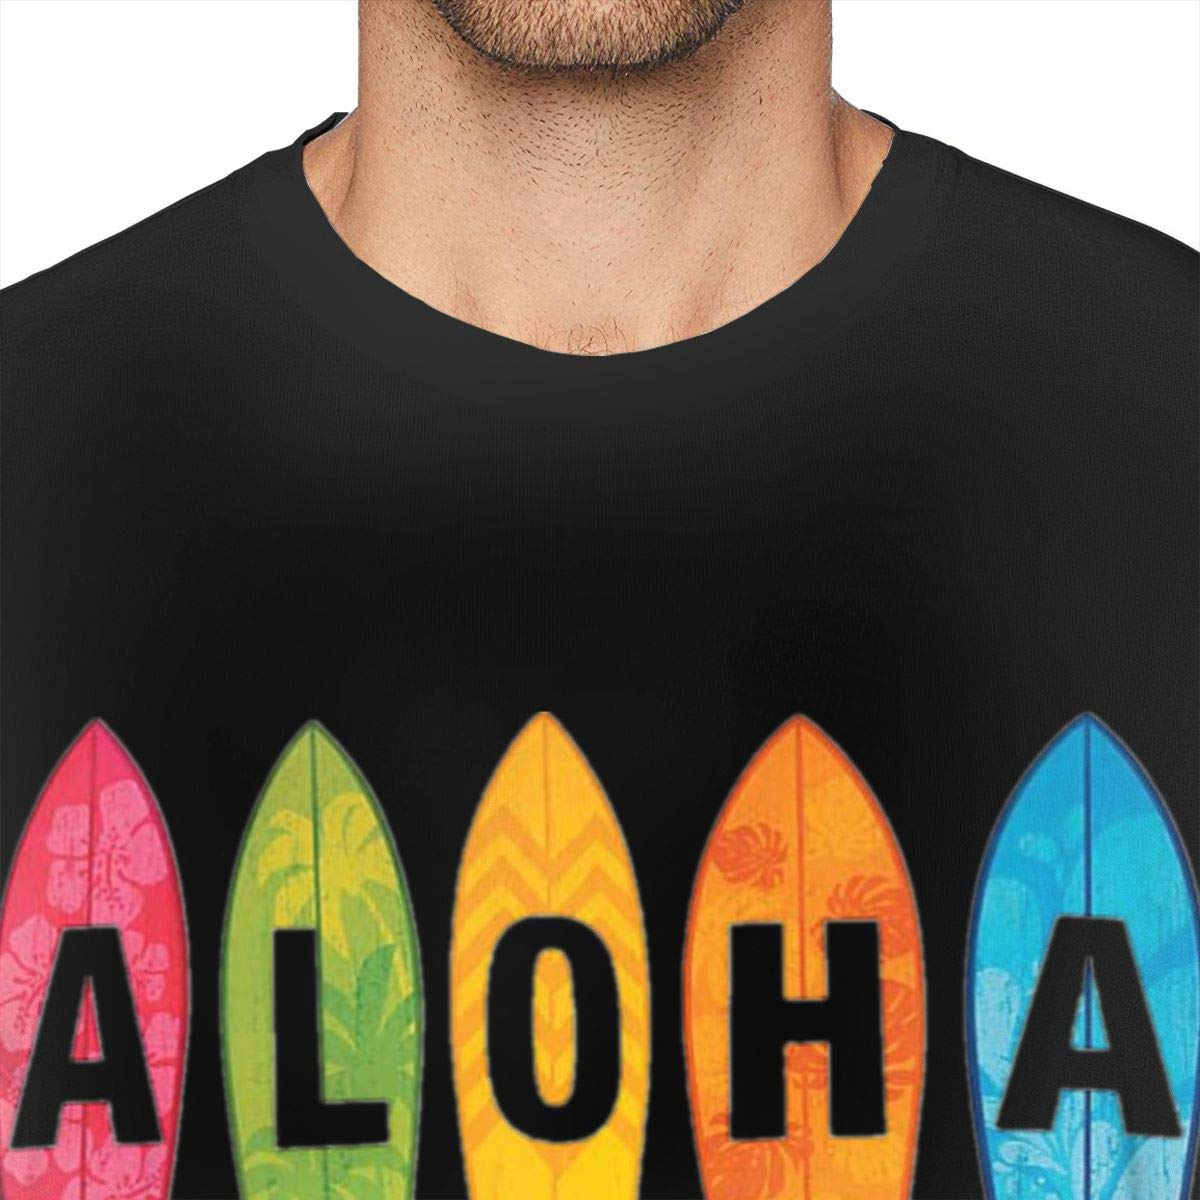 Aloha in Leaf Graphic T-Shirt Men Soft Crew Neck T-Shirts Tees Size:S-6XL